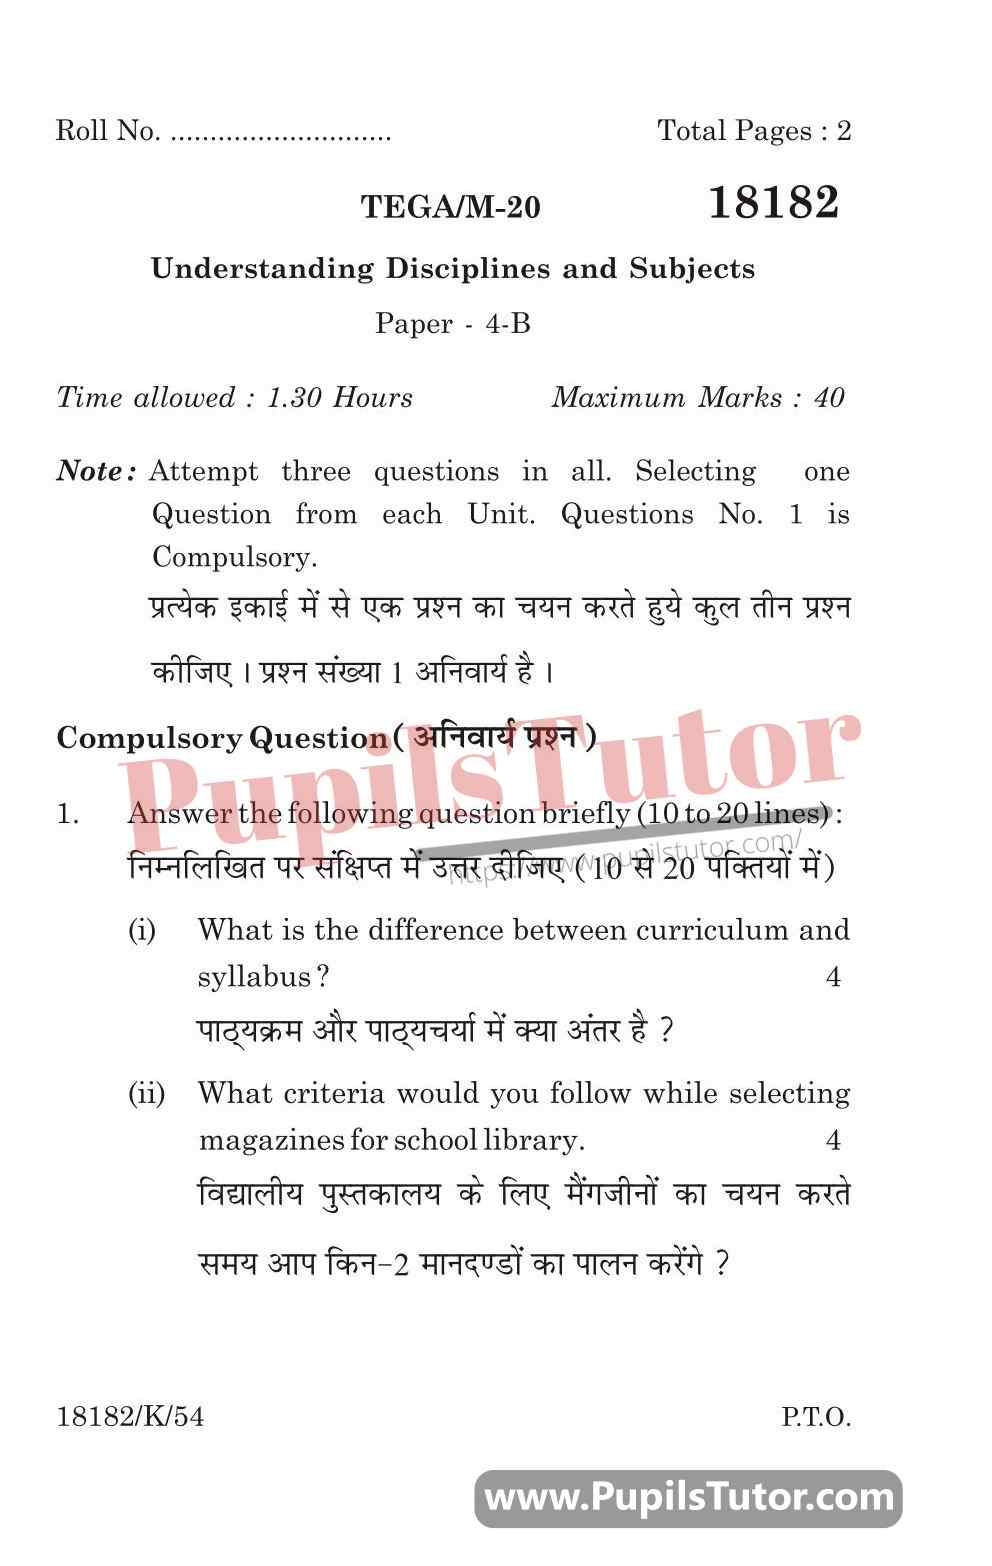 KUK (Kurukshetra University, Haryana) Understanding Disciplines And Subjects Question Paper 2020 For B.Ed 1st And 2nd Year And All The 4 Semesters In English And Hindi Medium Free Download PDF - Page 1 - Pupils Tutor